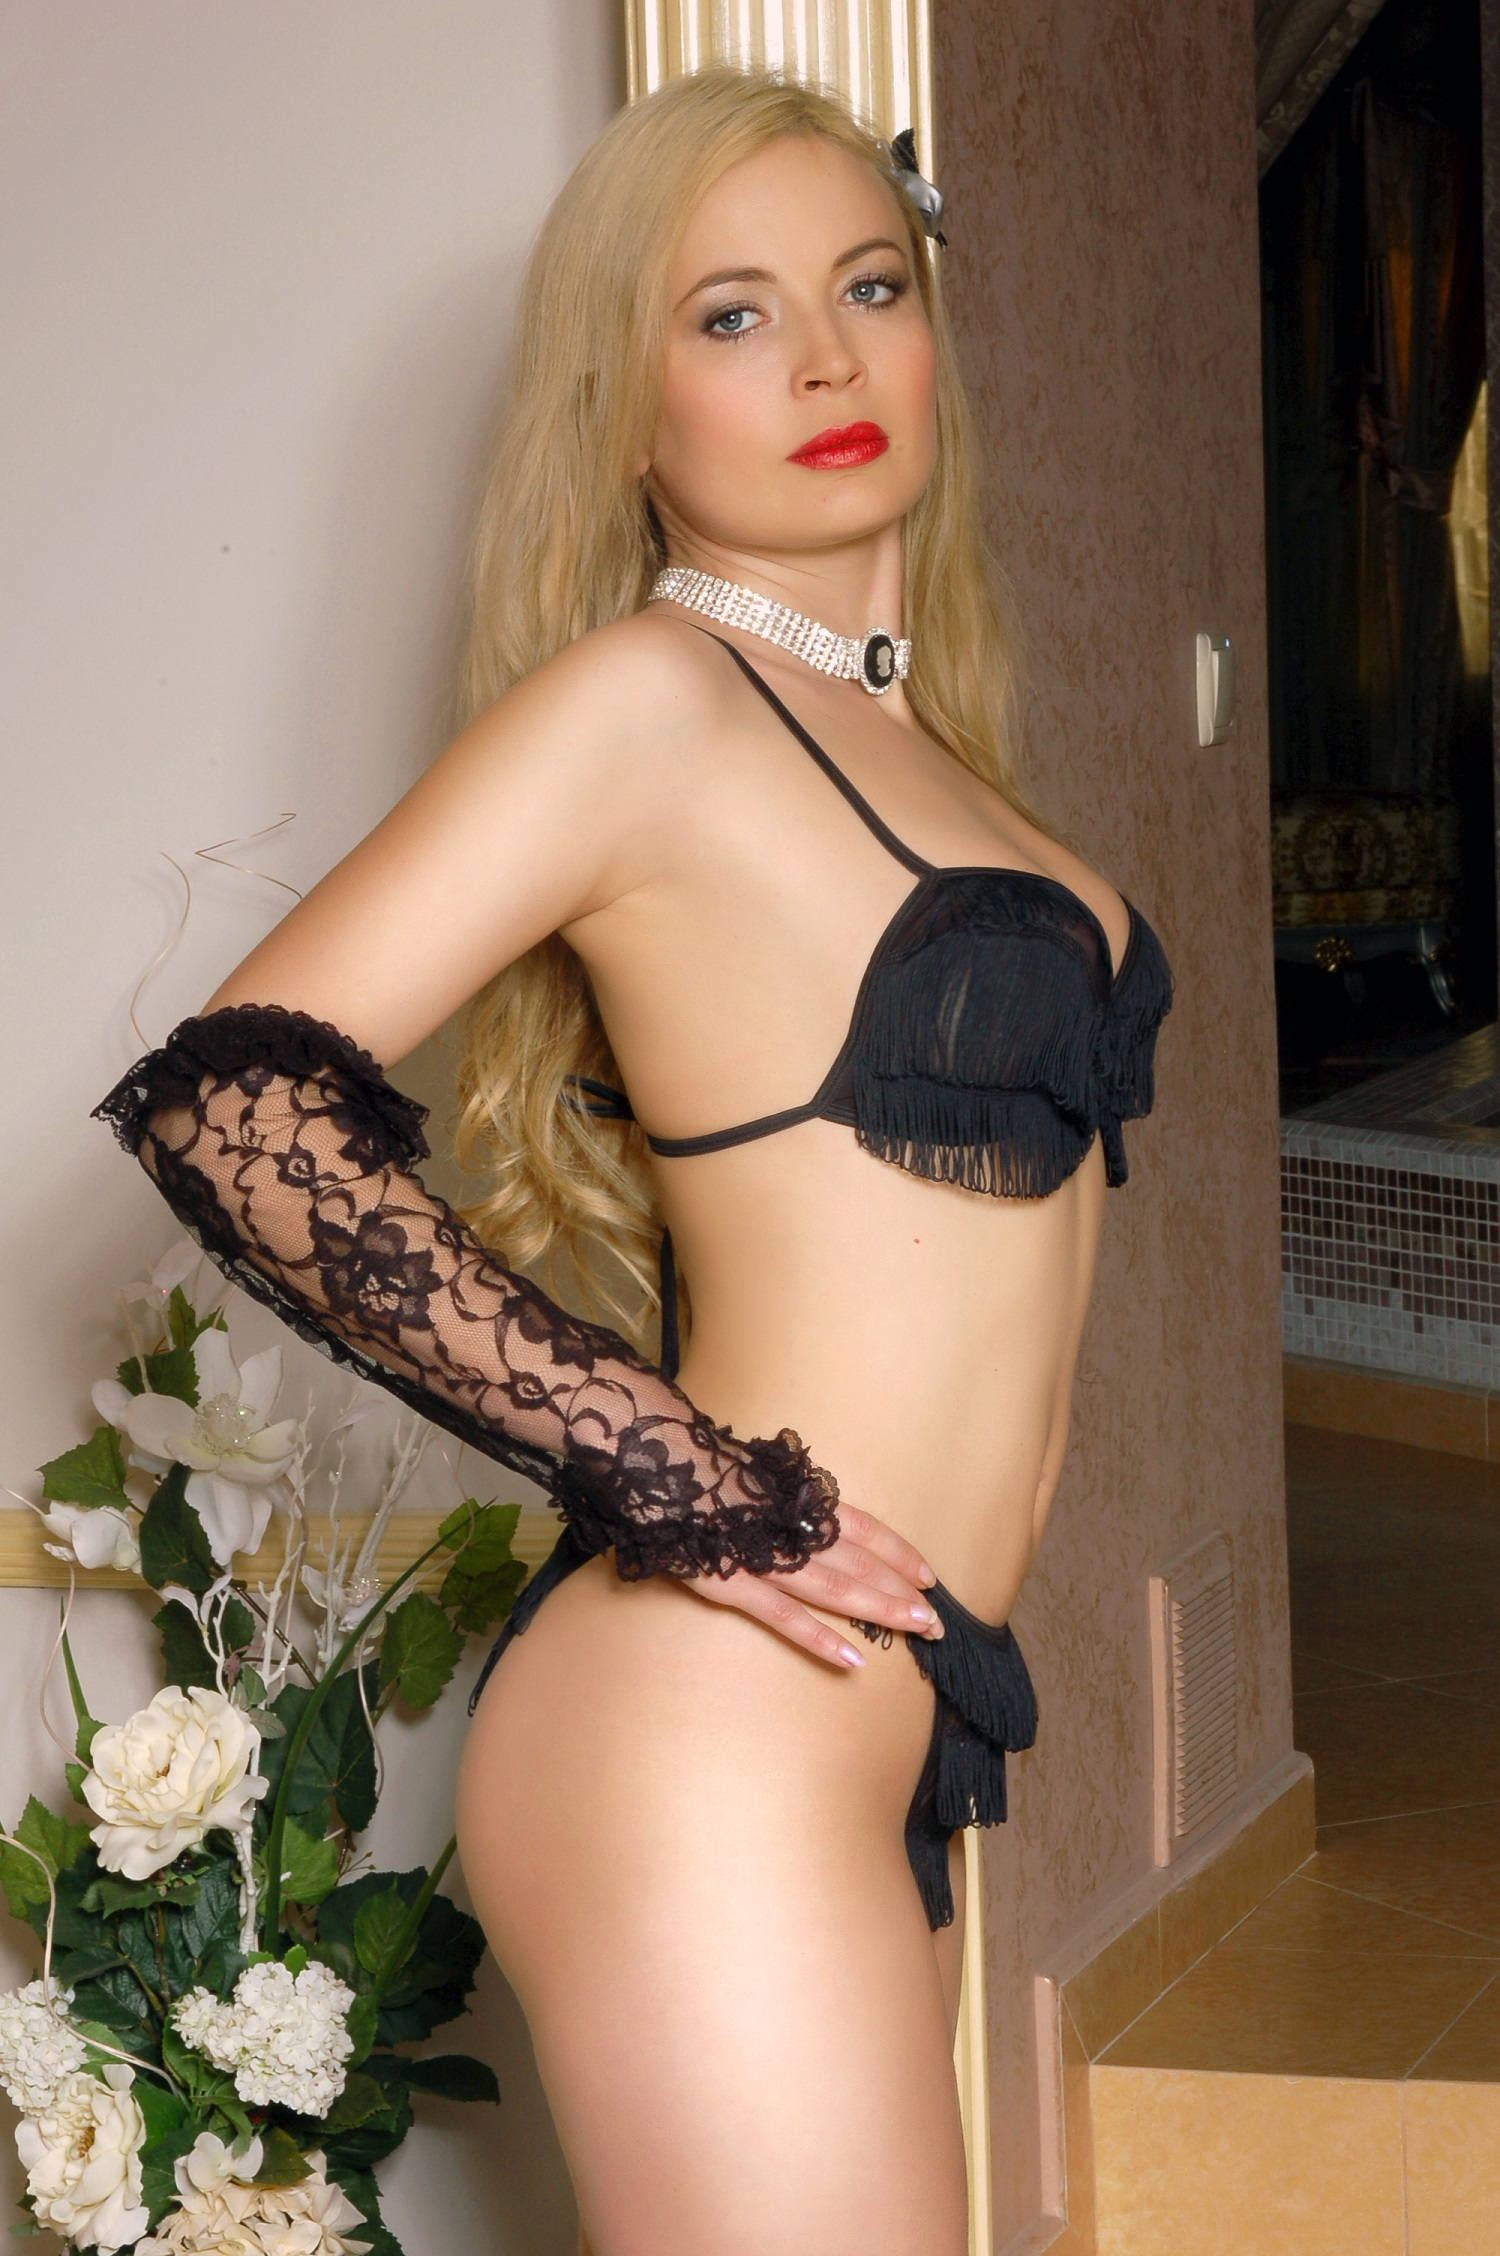 bøsse tv sex iveta escort prague